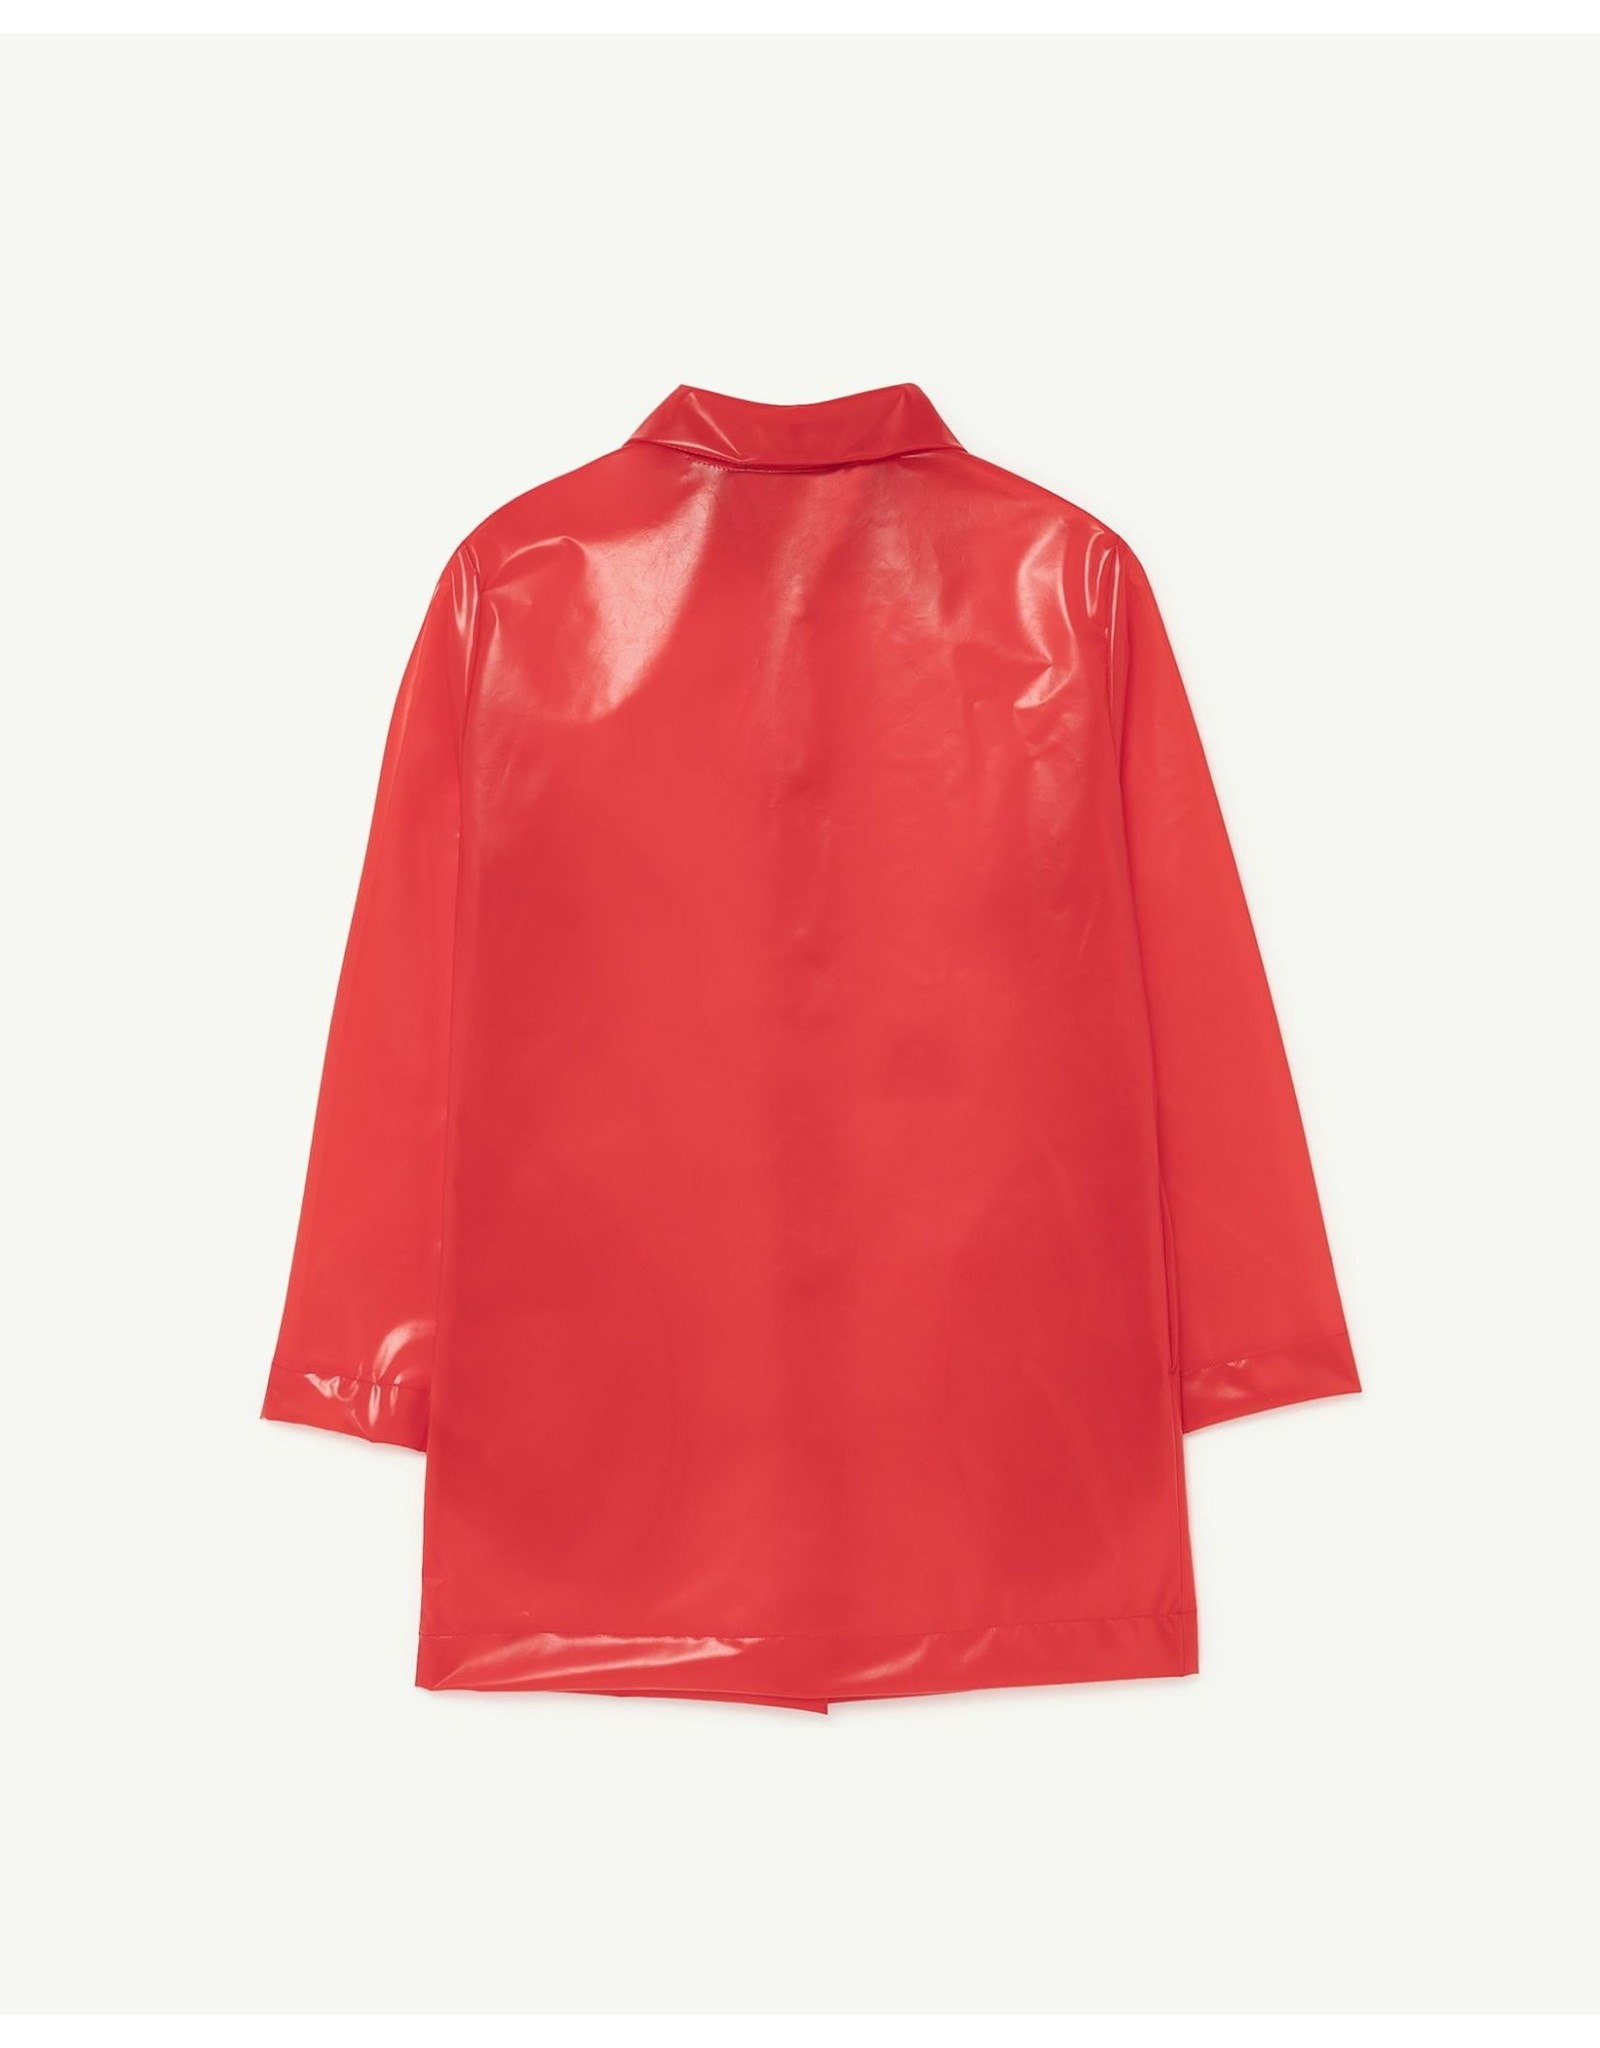 TAO PS21 012038CE Lion kids jacket red